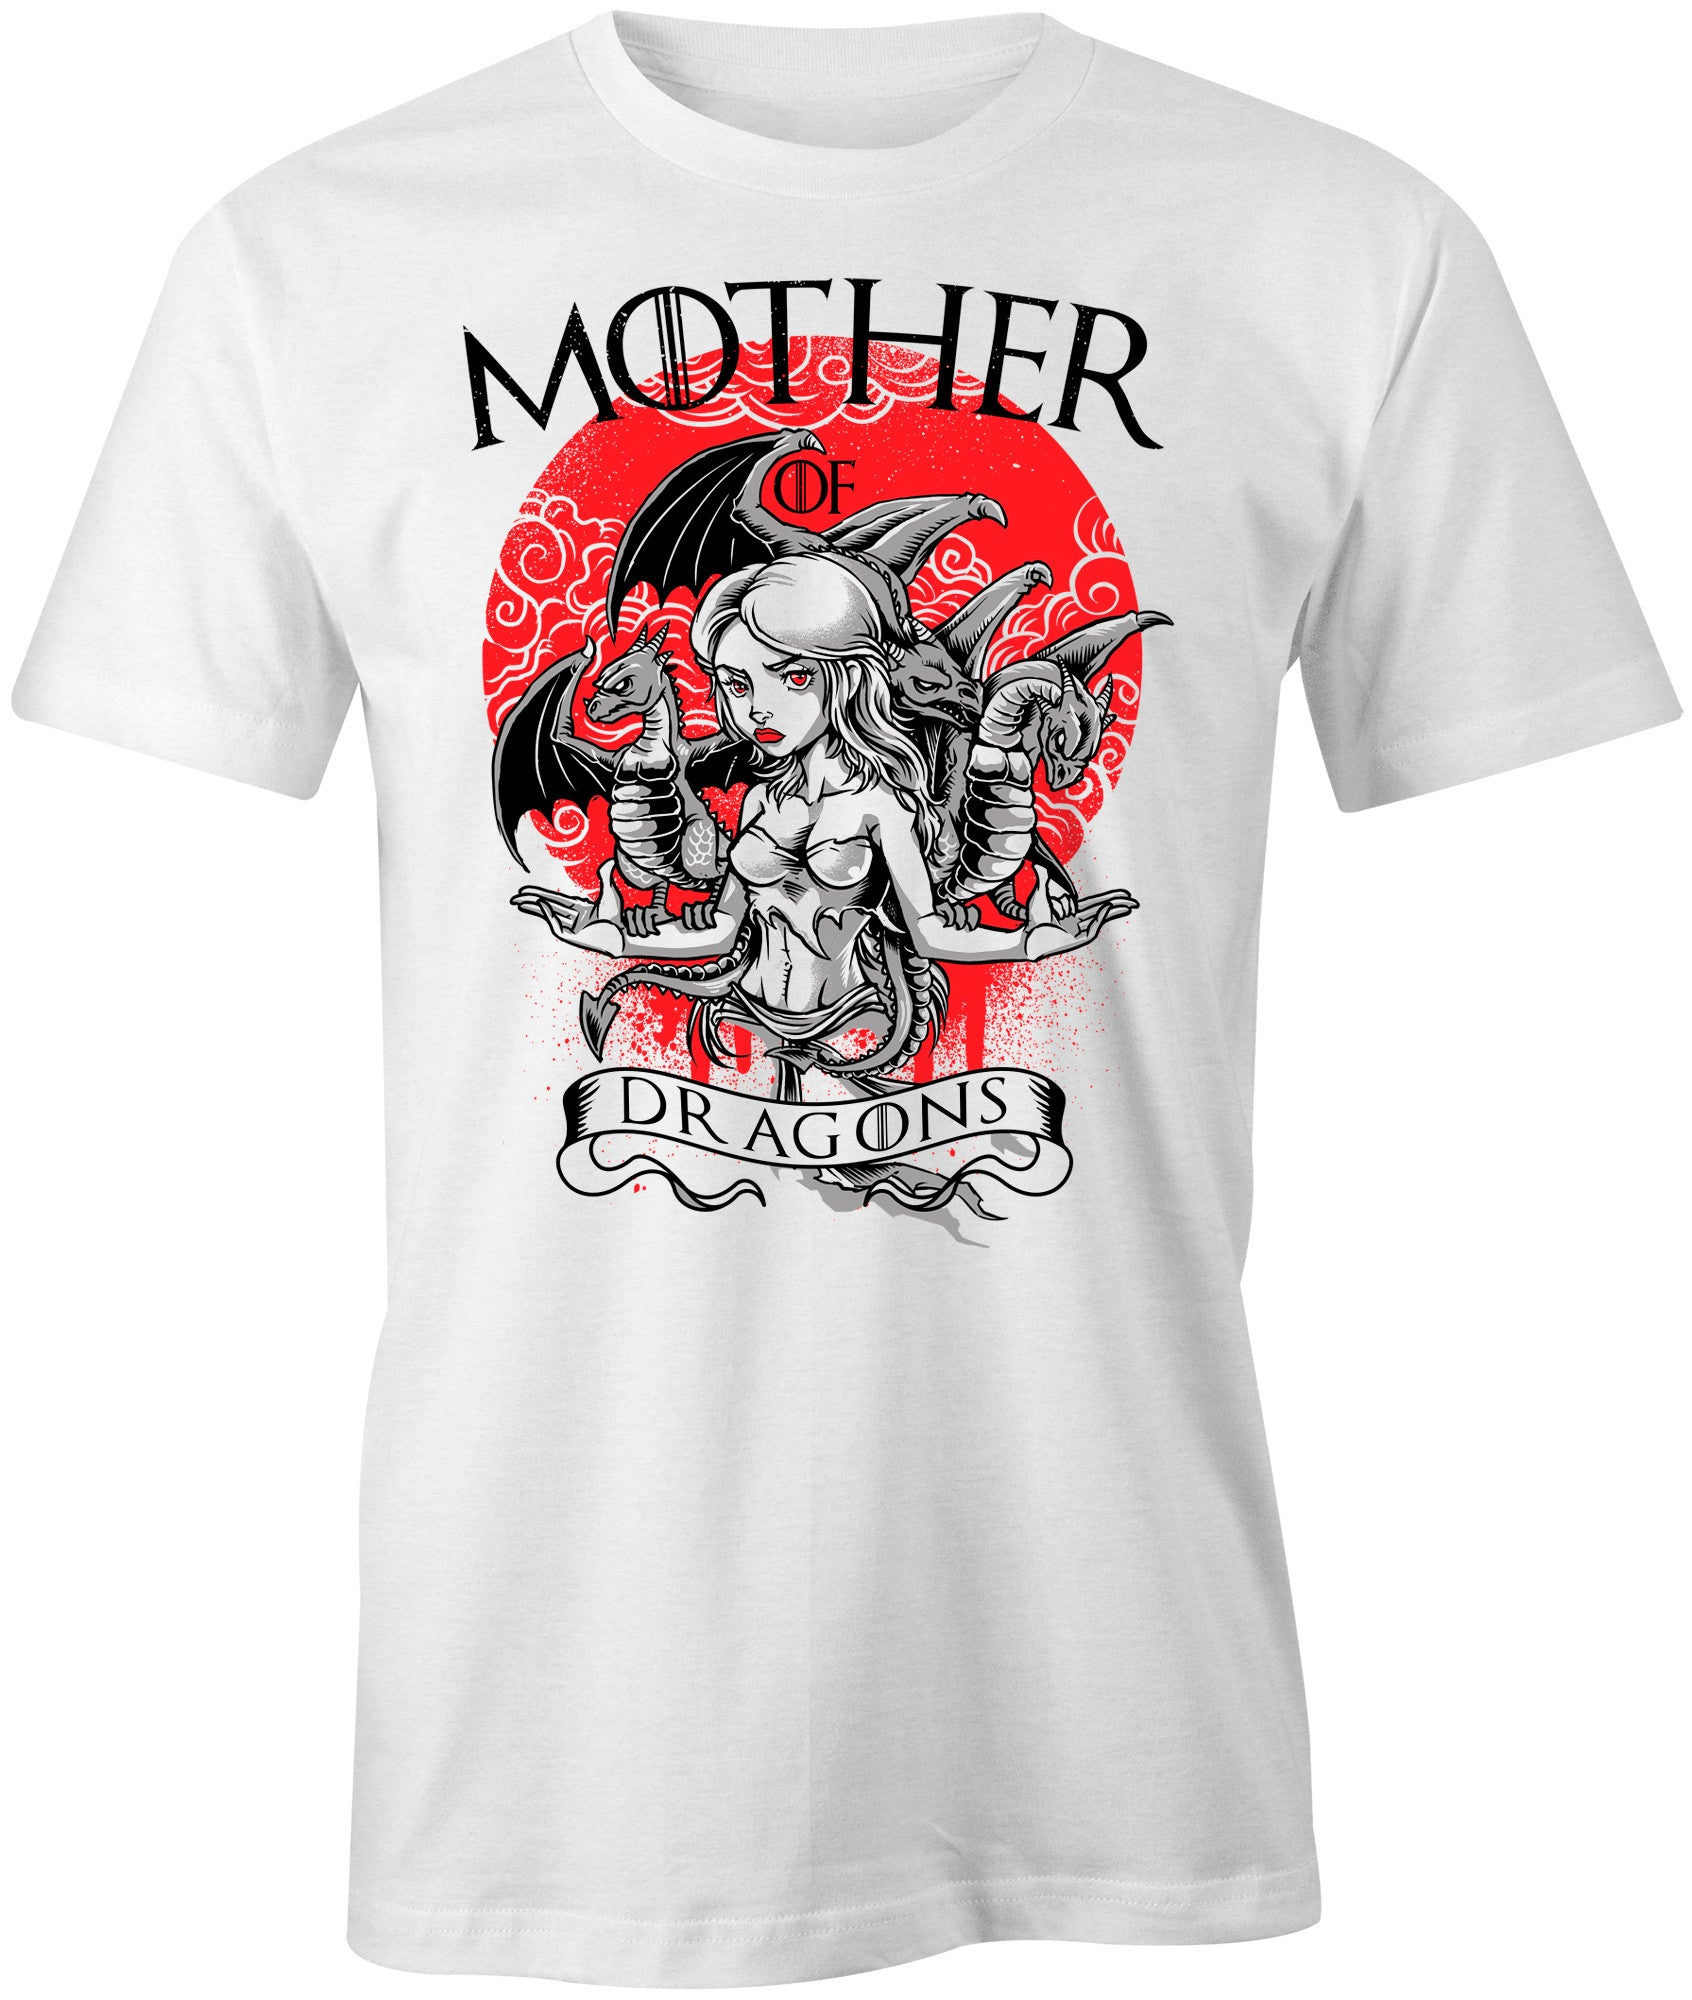 Buy mother of dragons t shirt game of thrones Where can i buy game of thrones t shirts